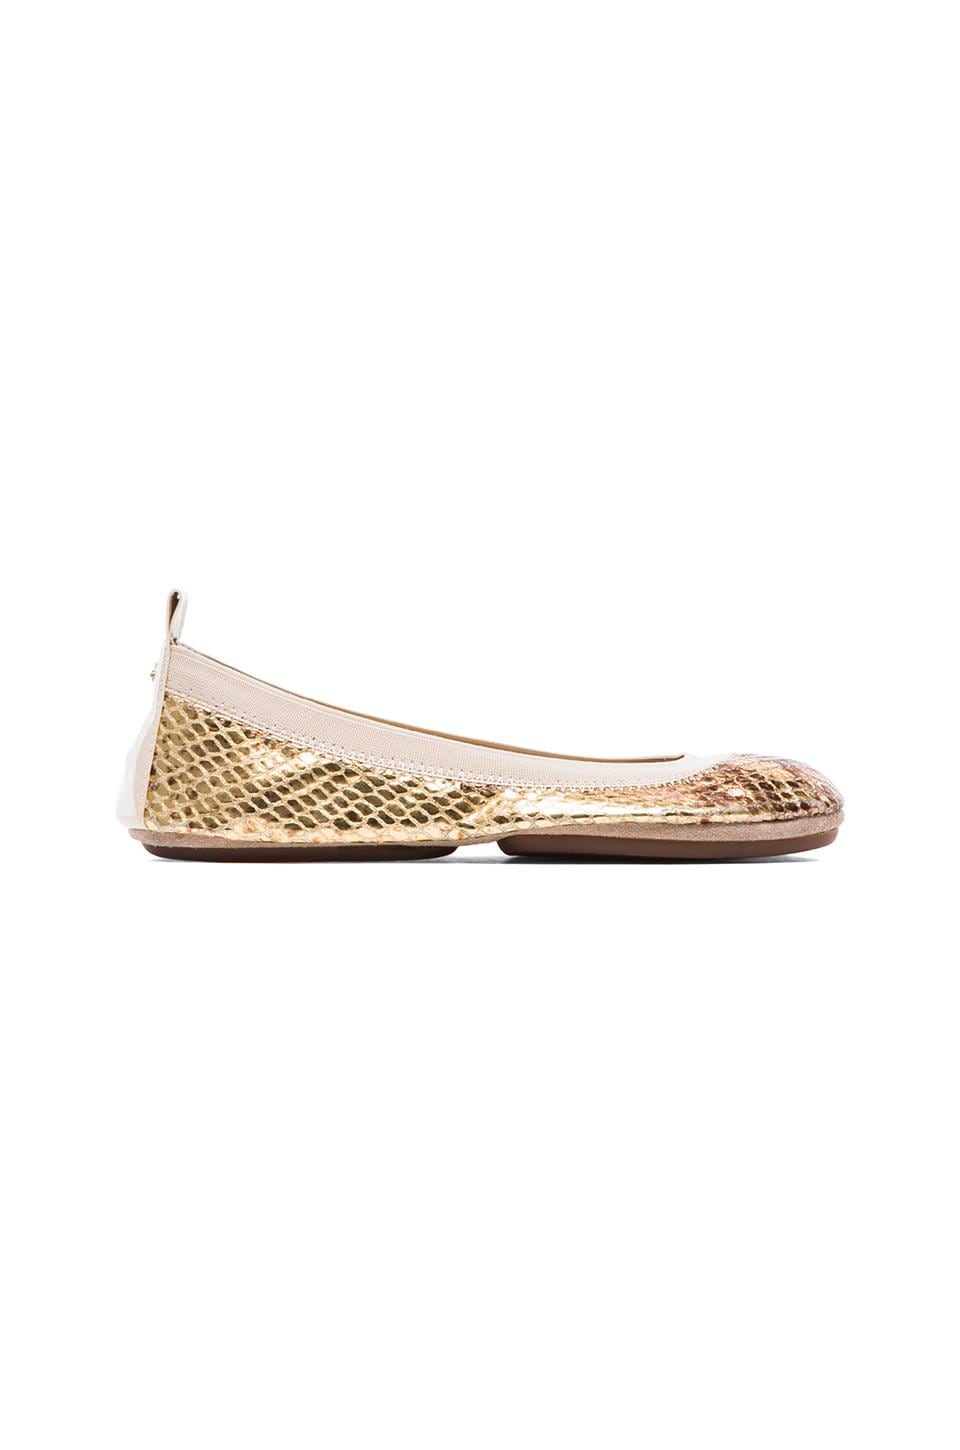 Yosi Samra Samara Metallic Python Leather Flat in Gold